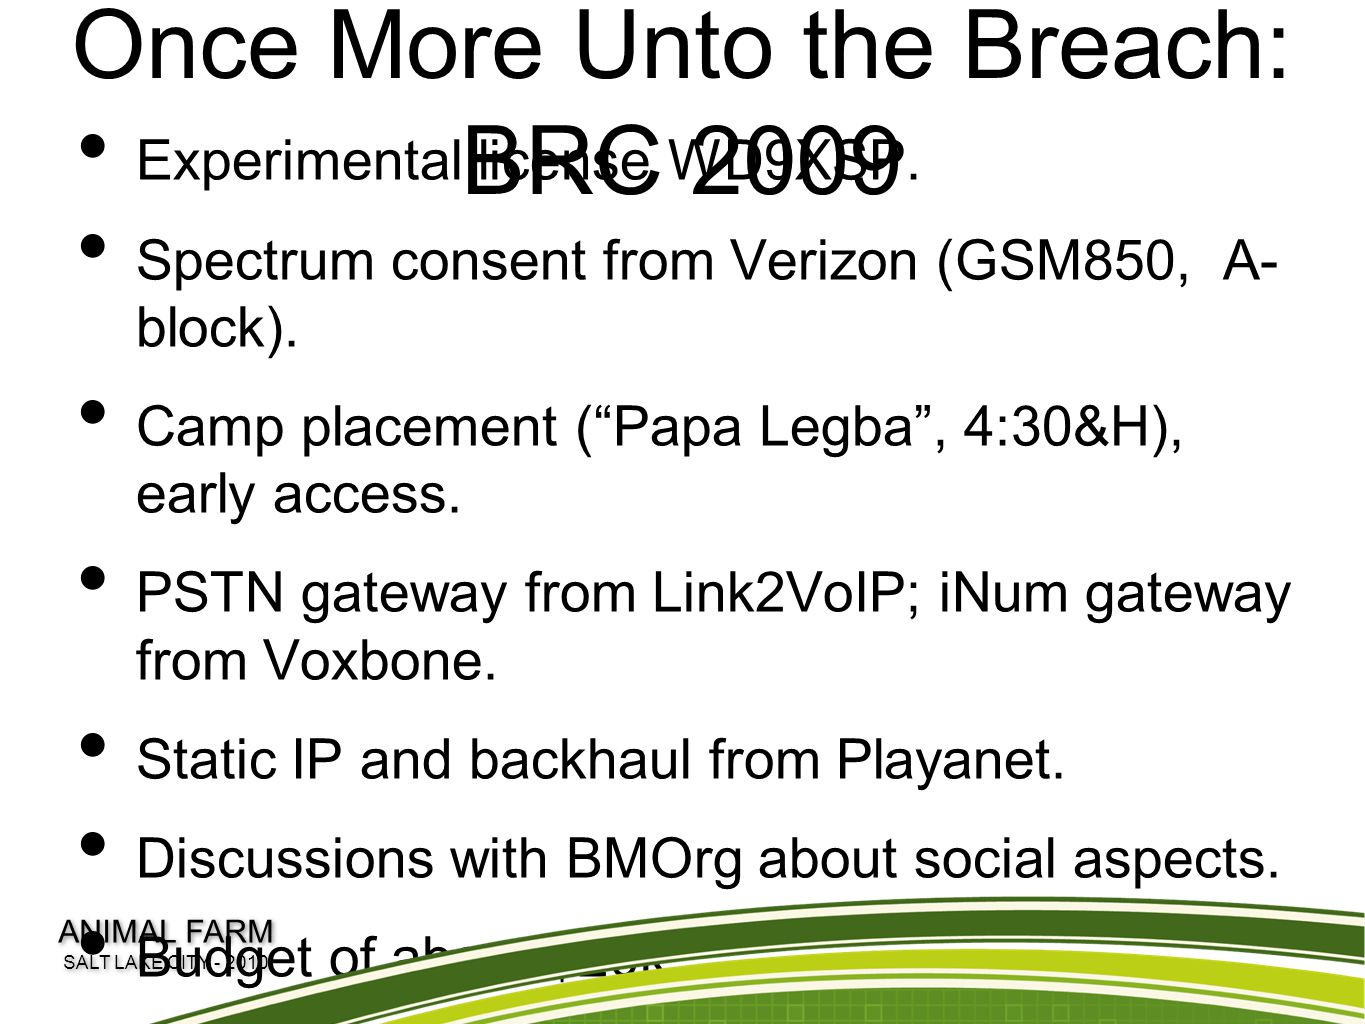 Once More Unto the Breach: BRC 2009 Experimental license WD9XSP.